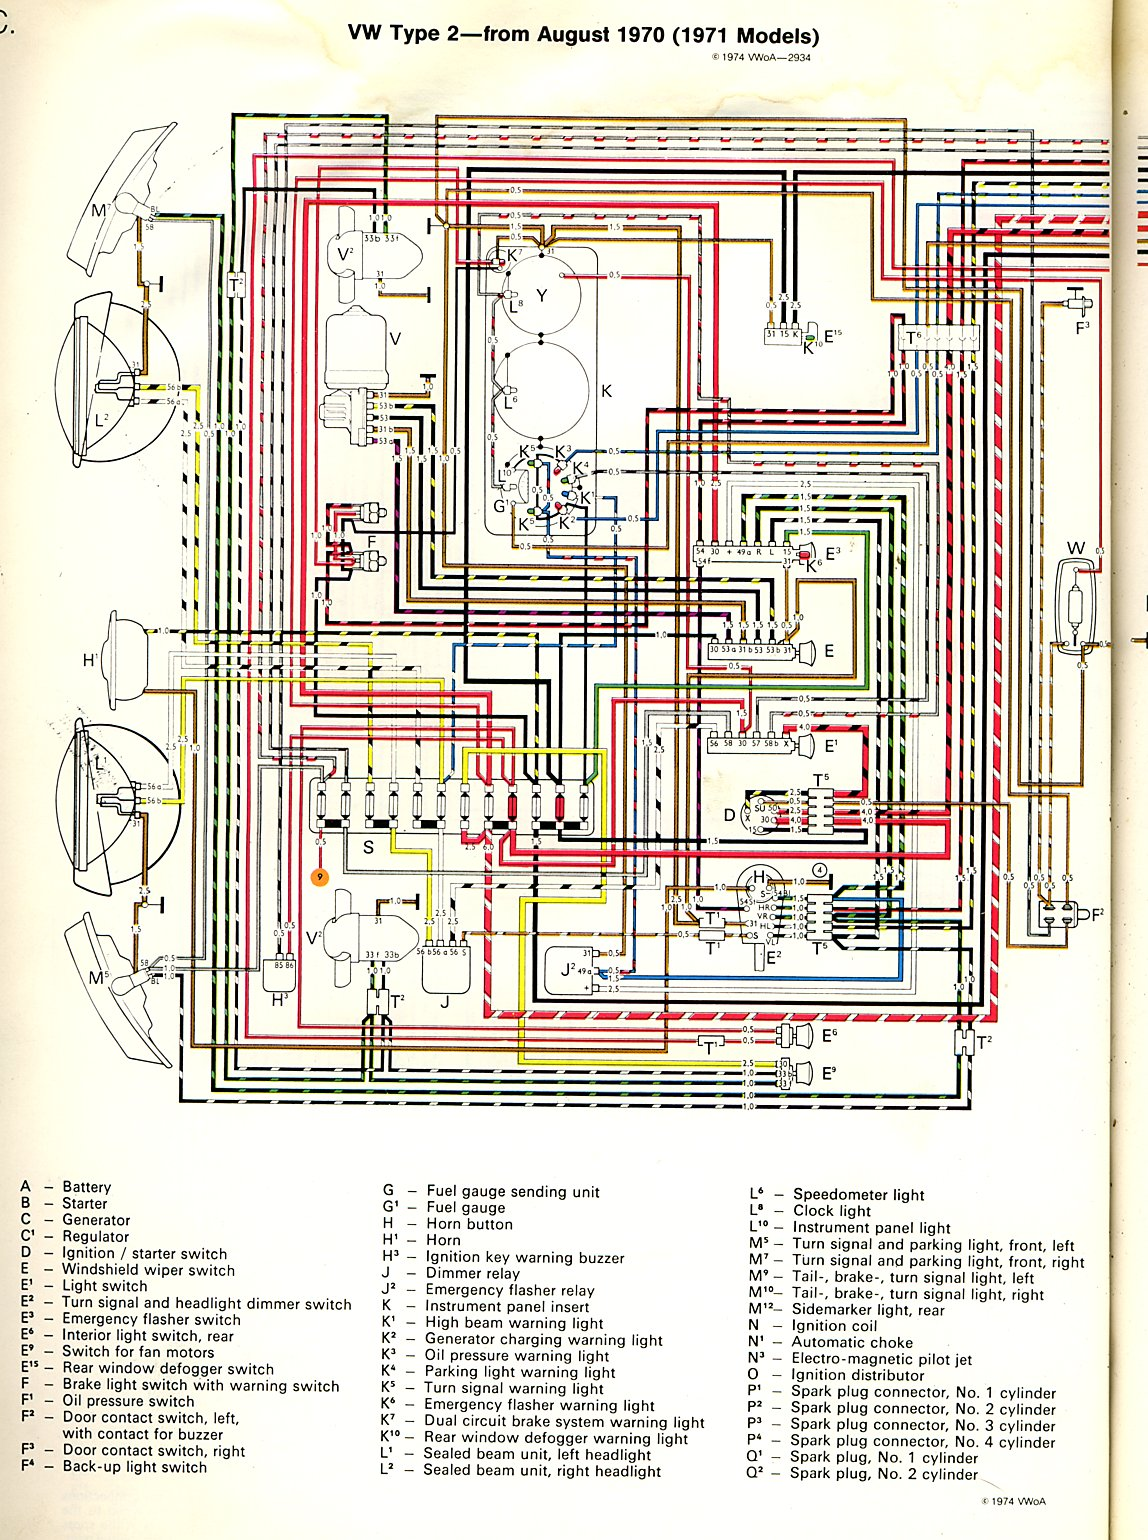 1973 Mustang Ignition Switch Wiring Diagram 73 Vw Schemes Bus Diagrams Schematics U2022 Rh Schoosretailstores Com Bug